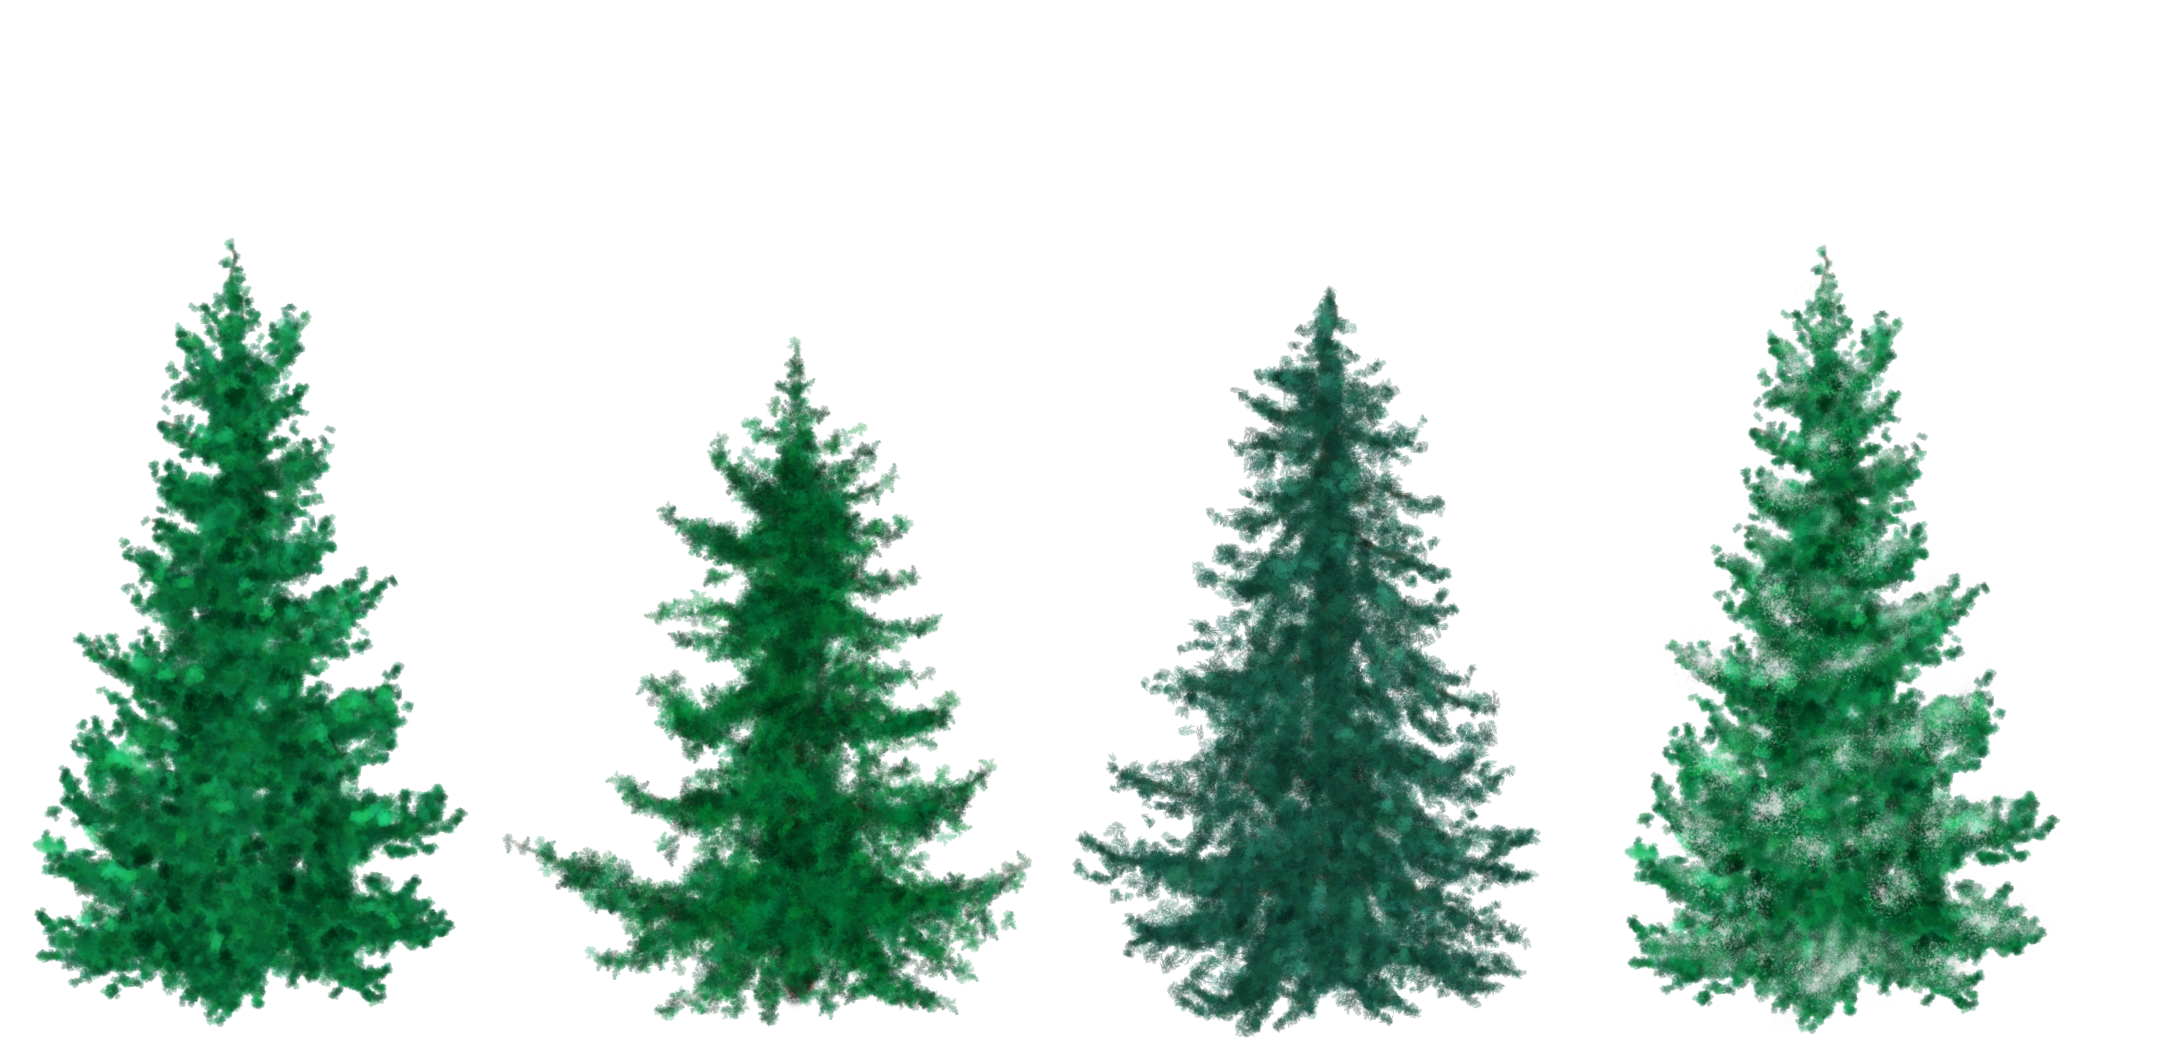 free painted christmas trees by silverbeam free painted christmas trees by silverbeam - Free Christmas Tree